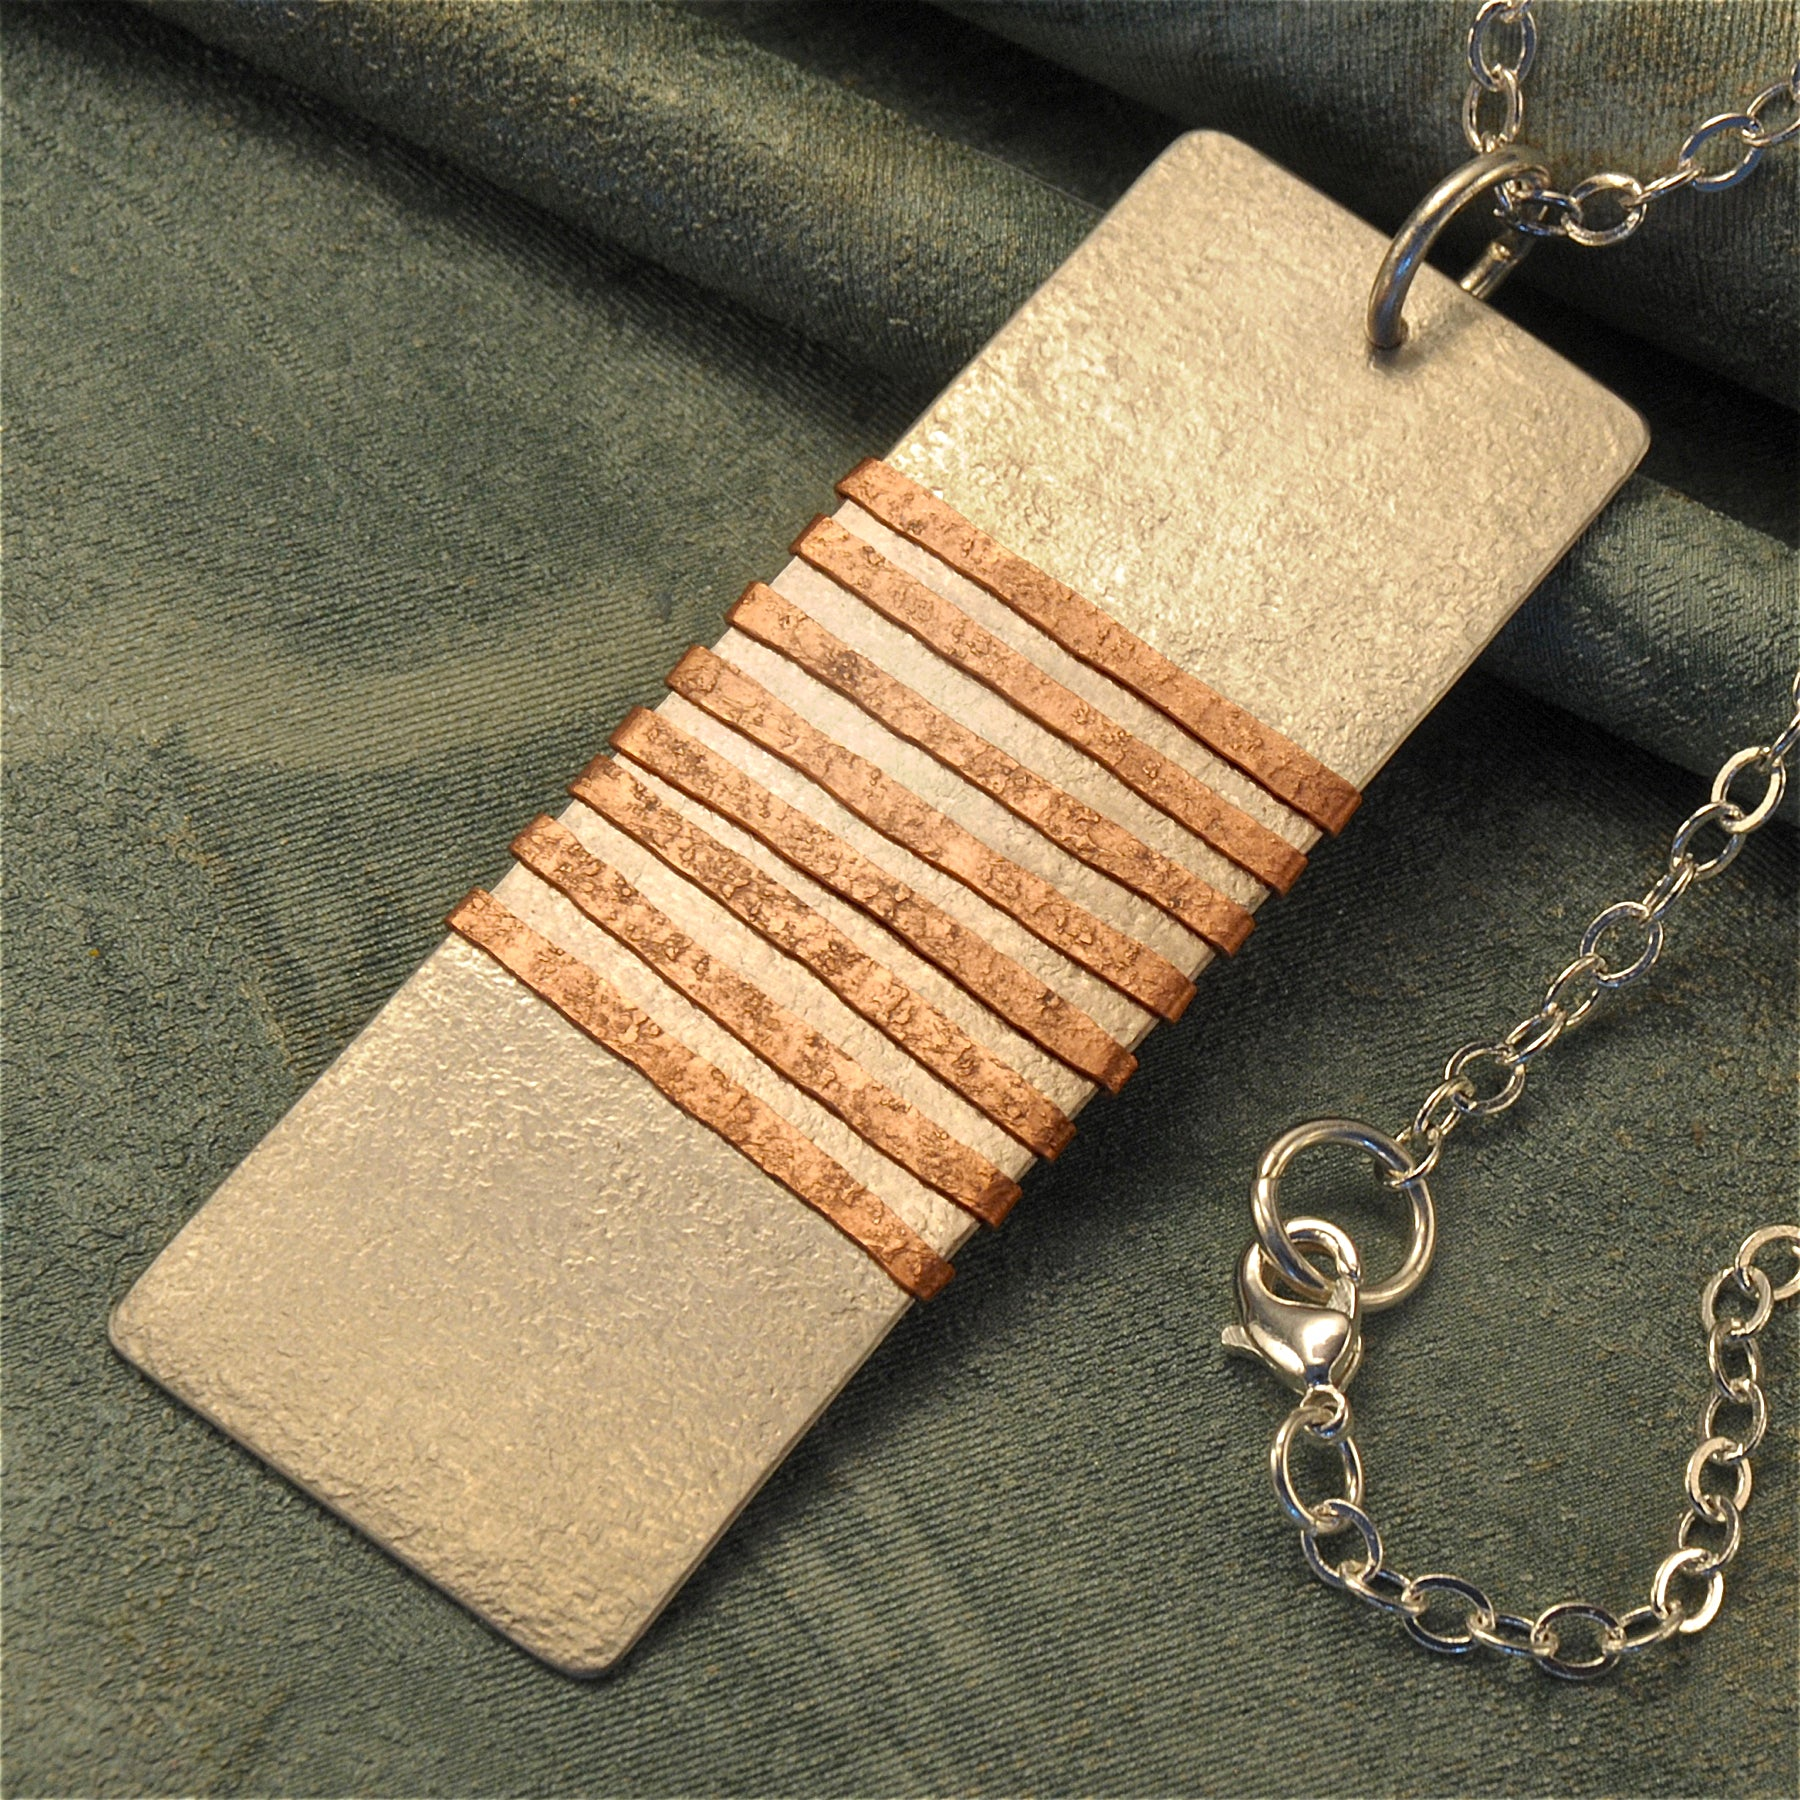 Rectangular stainless steel necklace